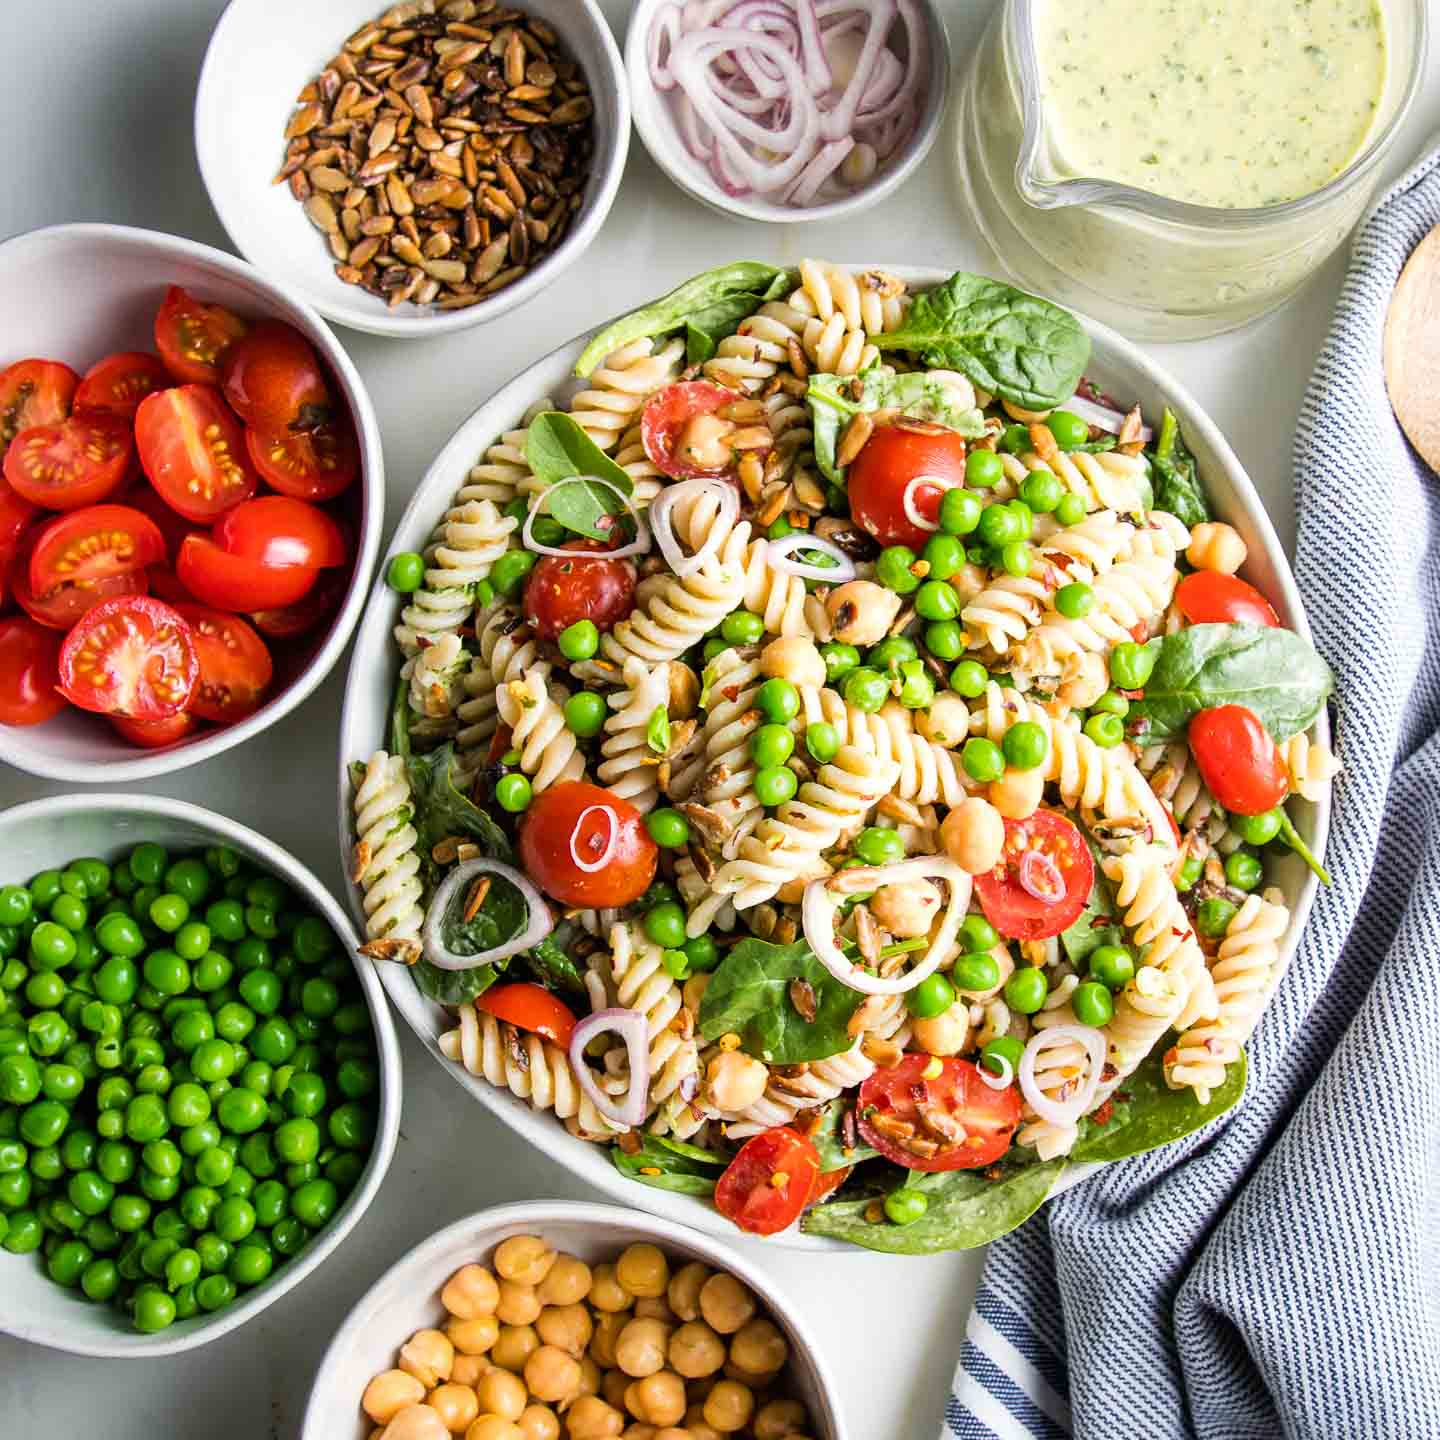 A white bowl filled with pasta salad and small bowls of the ingredients surrounding it: chick peas, green peas, halved cherry tomatoes, sunflower seeds, shallots and tahini parsley dressing.